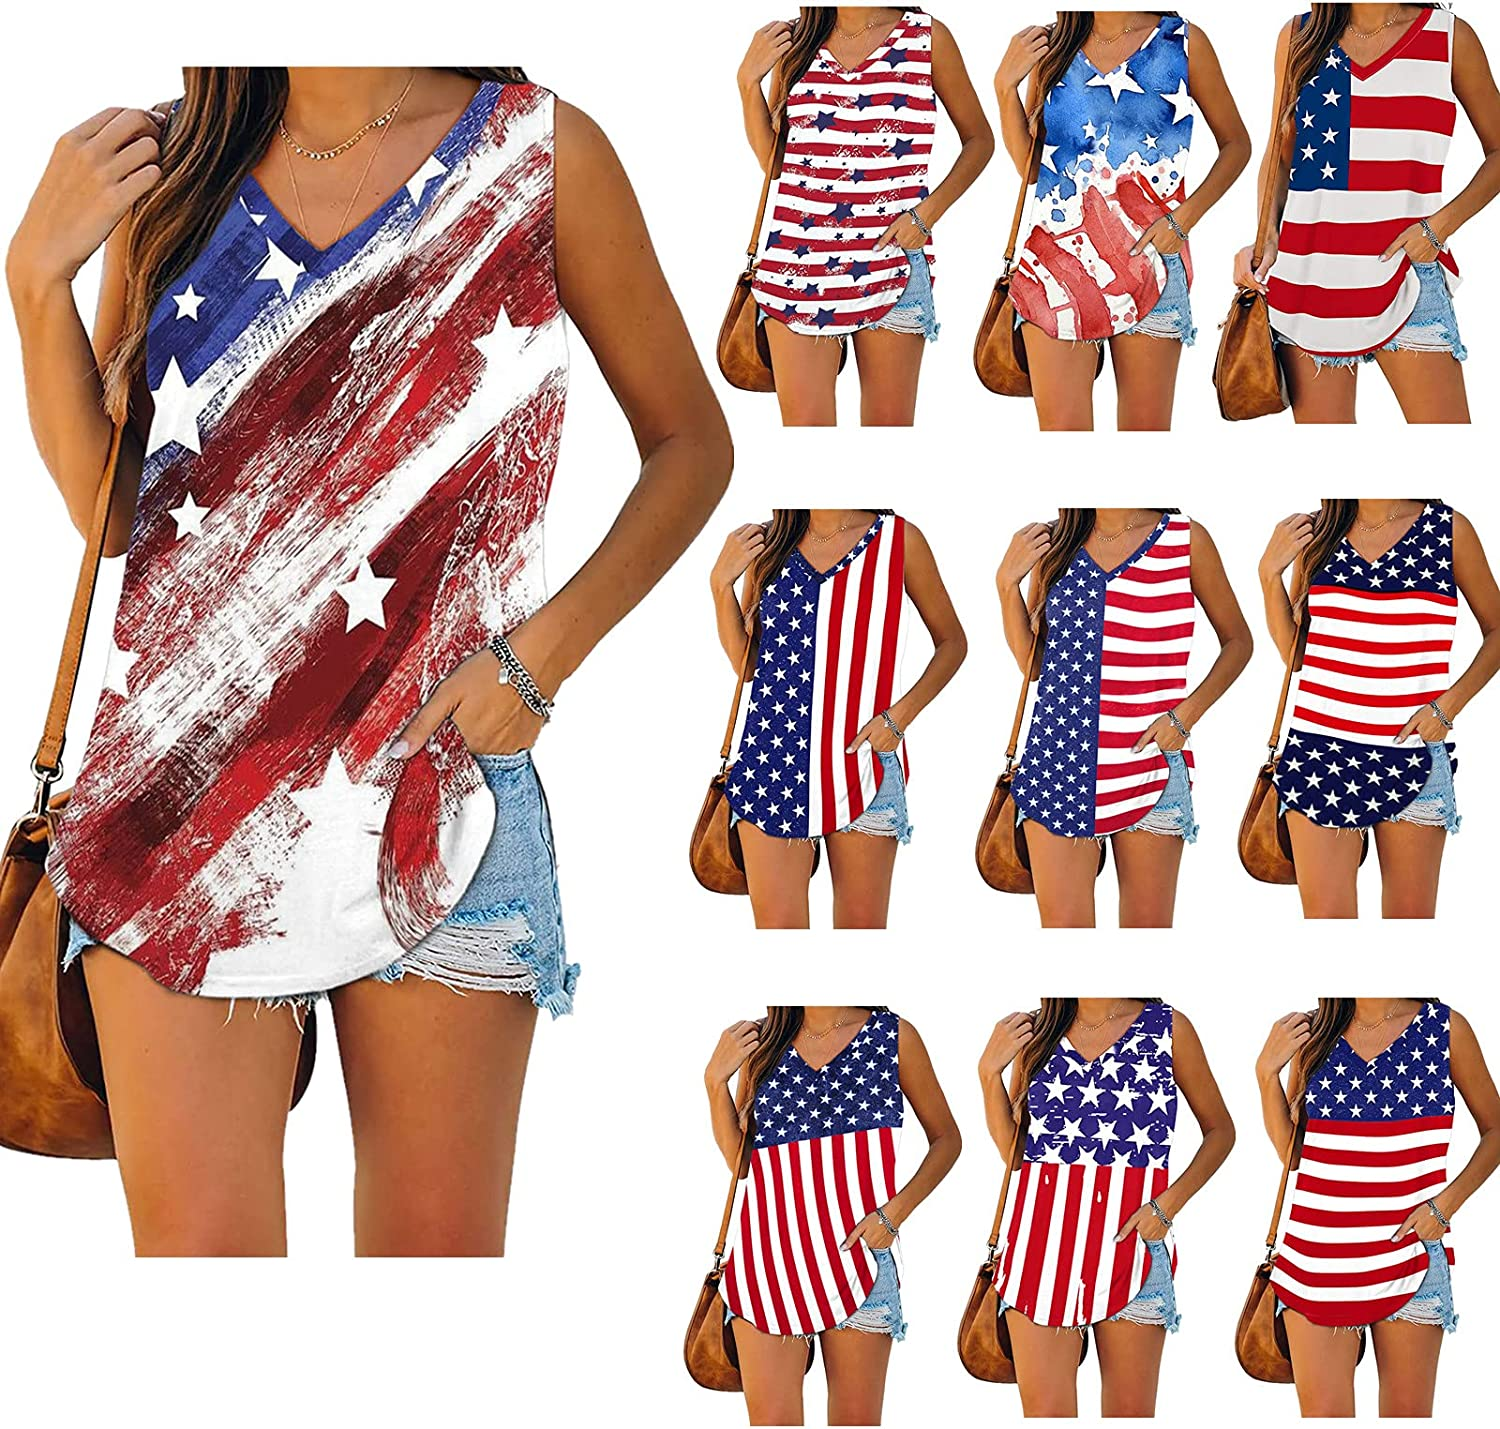 ORT 4th of July Tank Tops for Women, American Flag Graphic Patriotic Vest Loose Fit Women Tops Plus Size Sleeveless Shirts